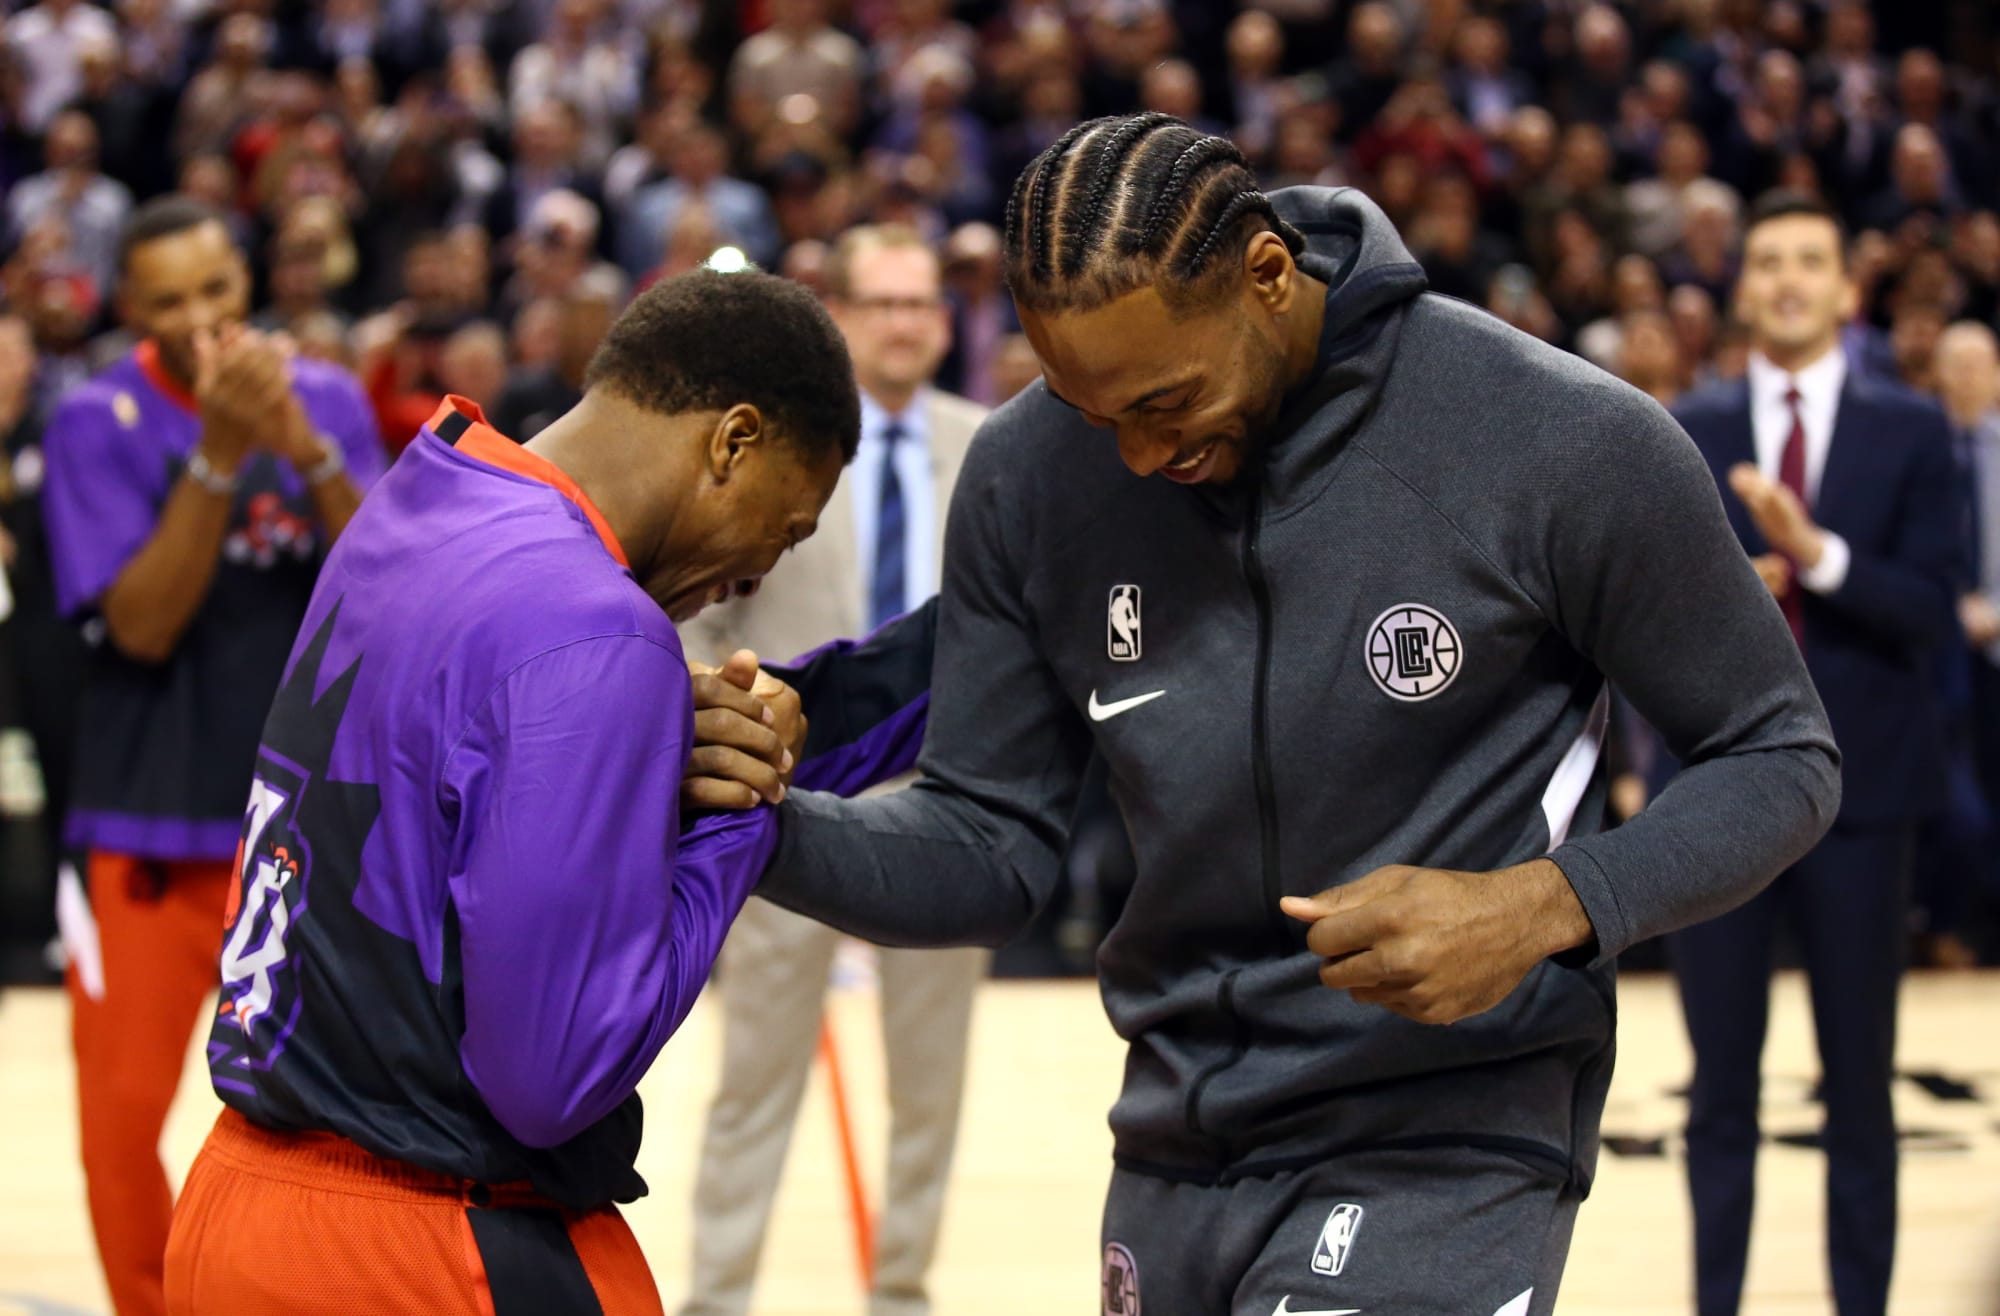 Kawhi Leonard and Clippers are what Toronto Raptors could've been